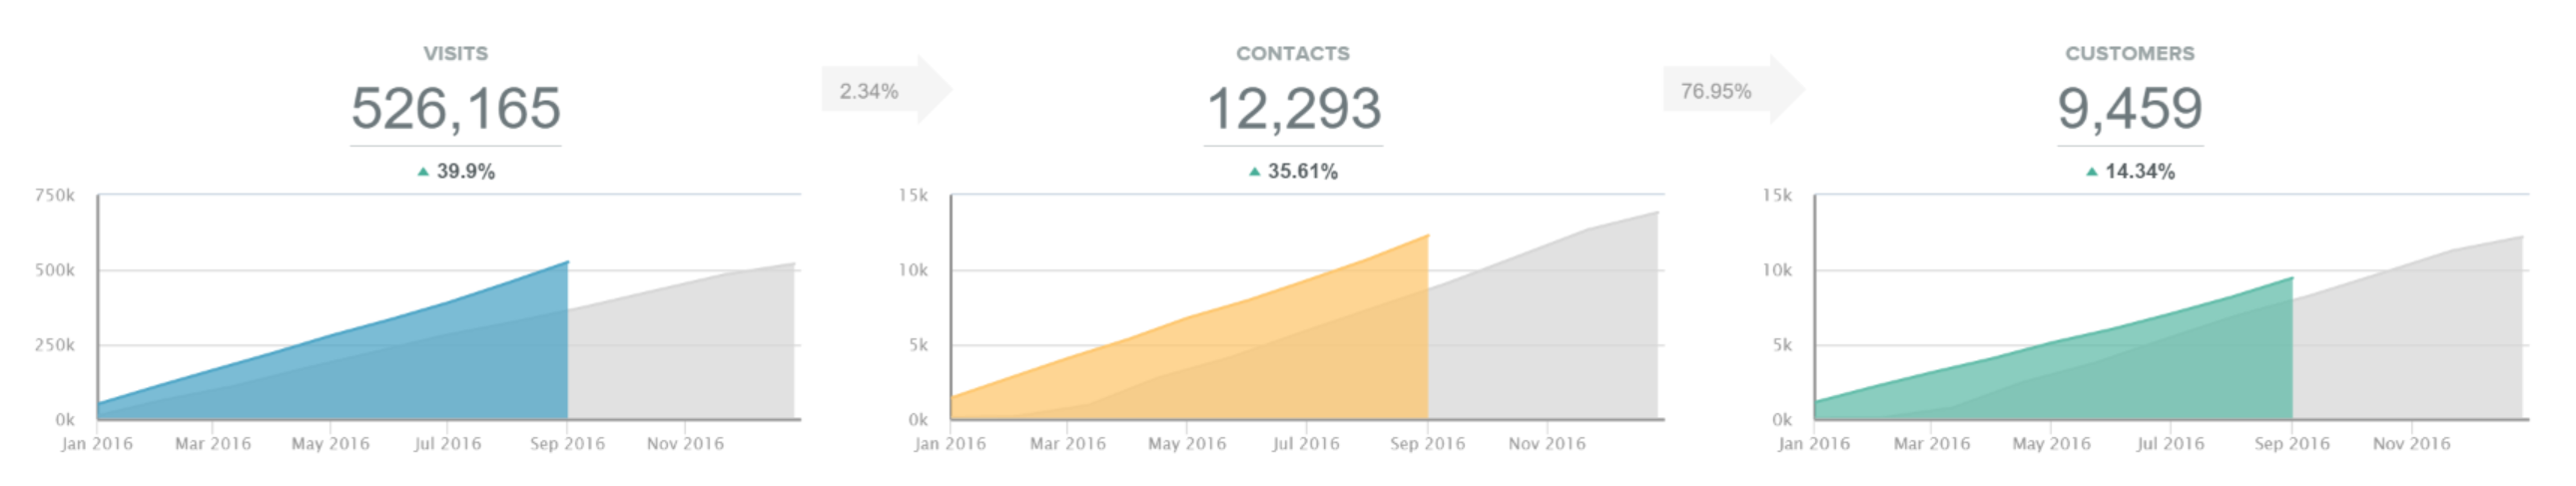 shoes_for_crews_marketing_dashboard_sfc.png